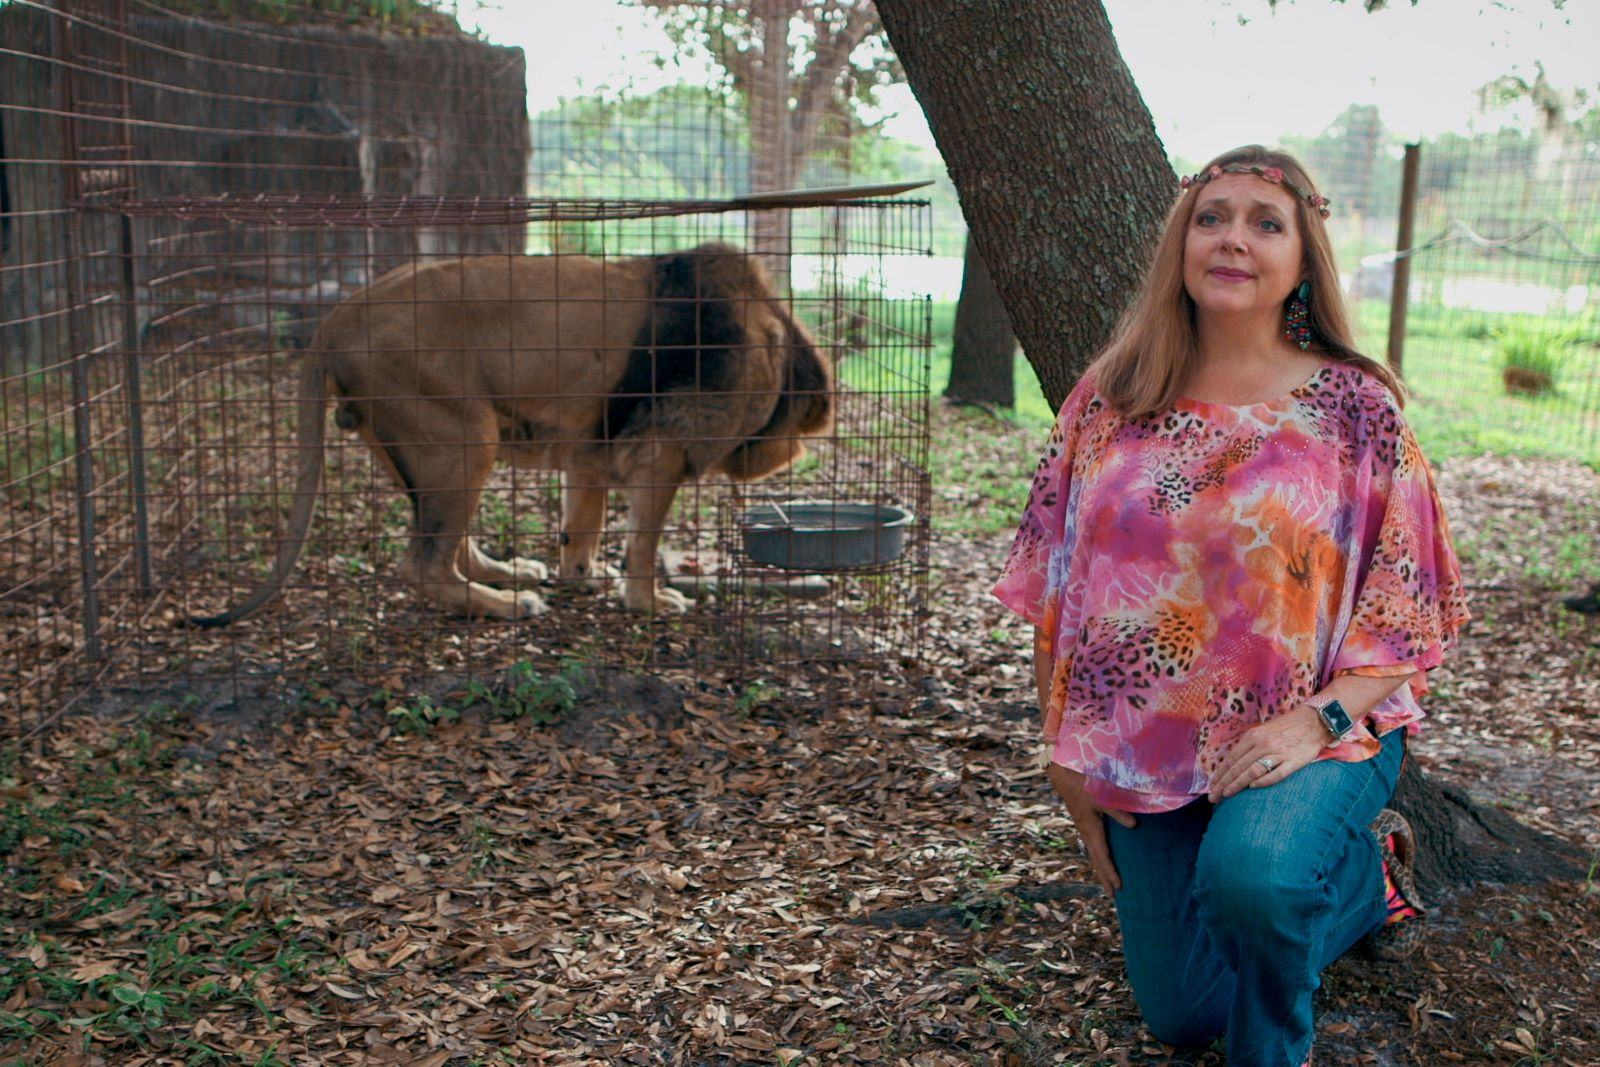 You know her, you probably hate her, but do you really know Big Cat Rescue? Here's everything you need to know about Carole Baskin's company.